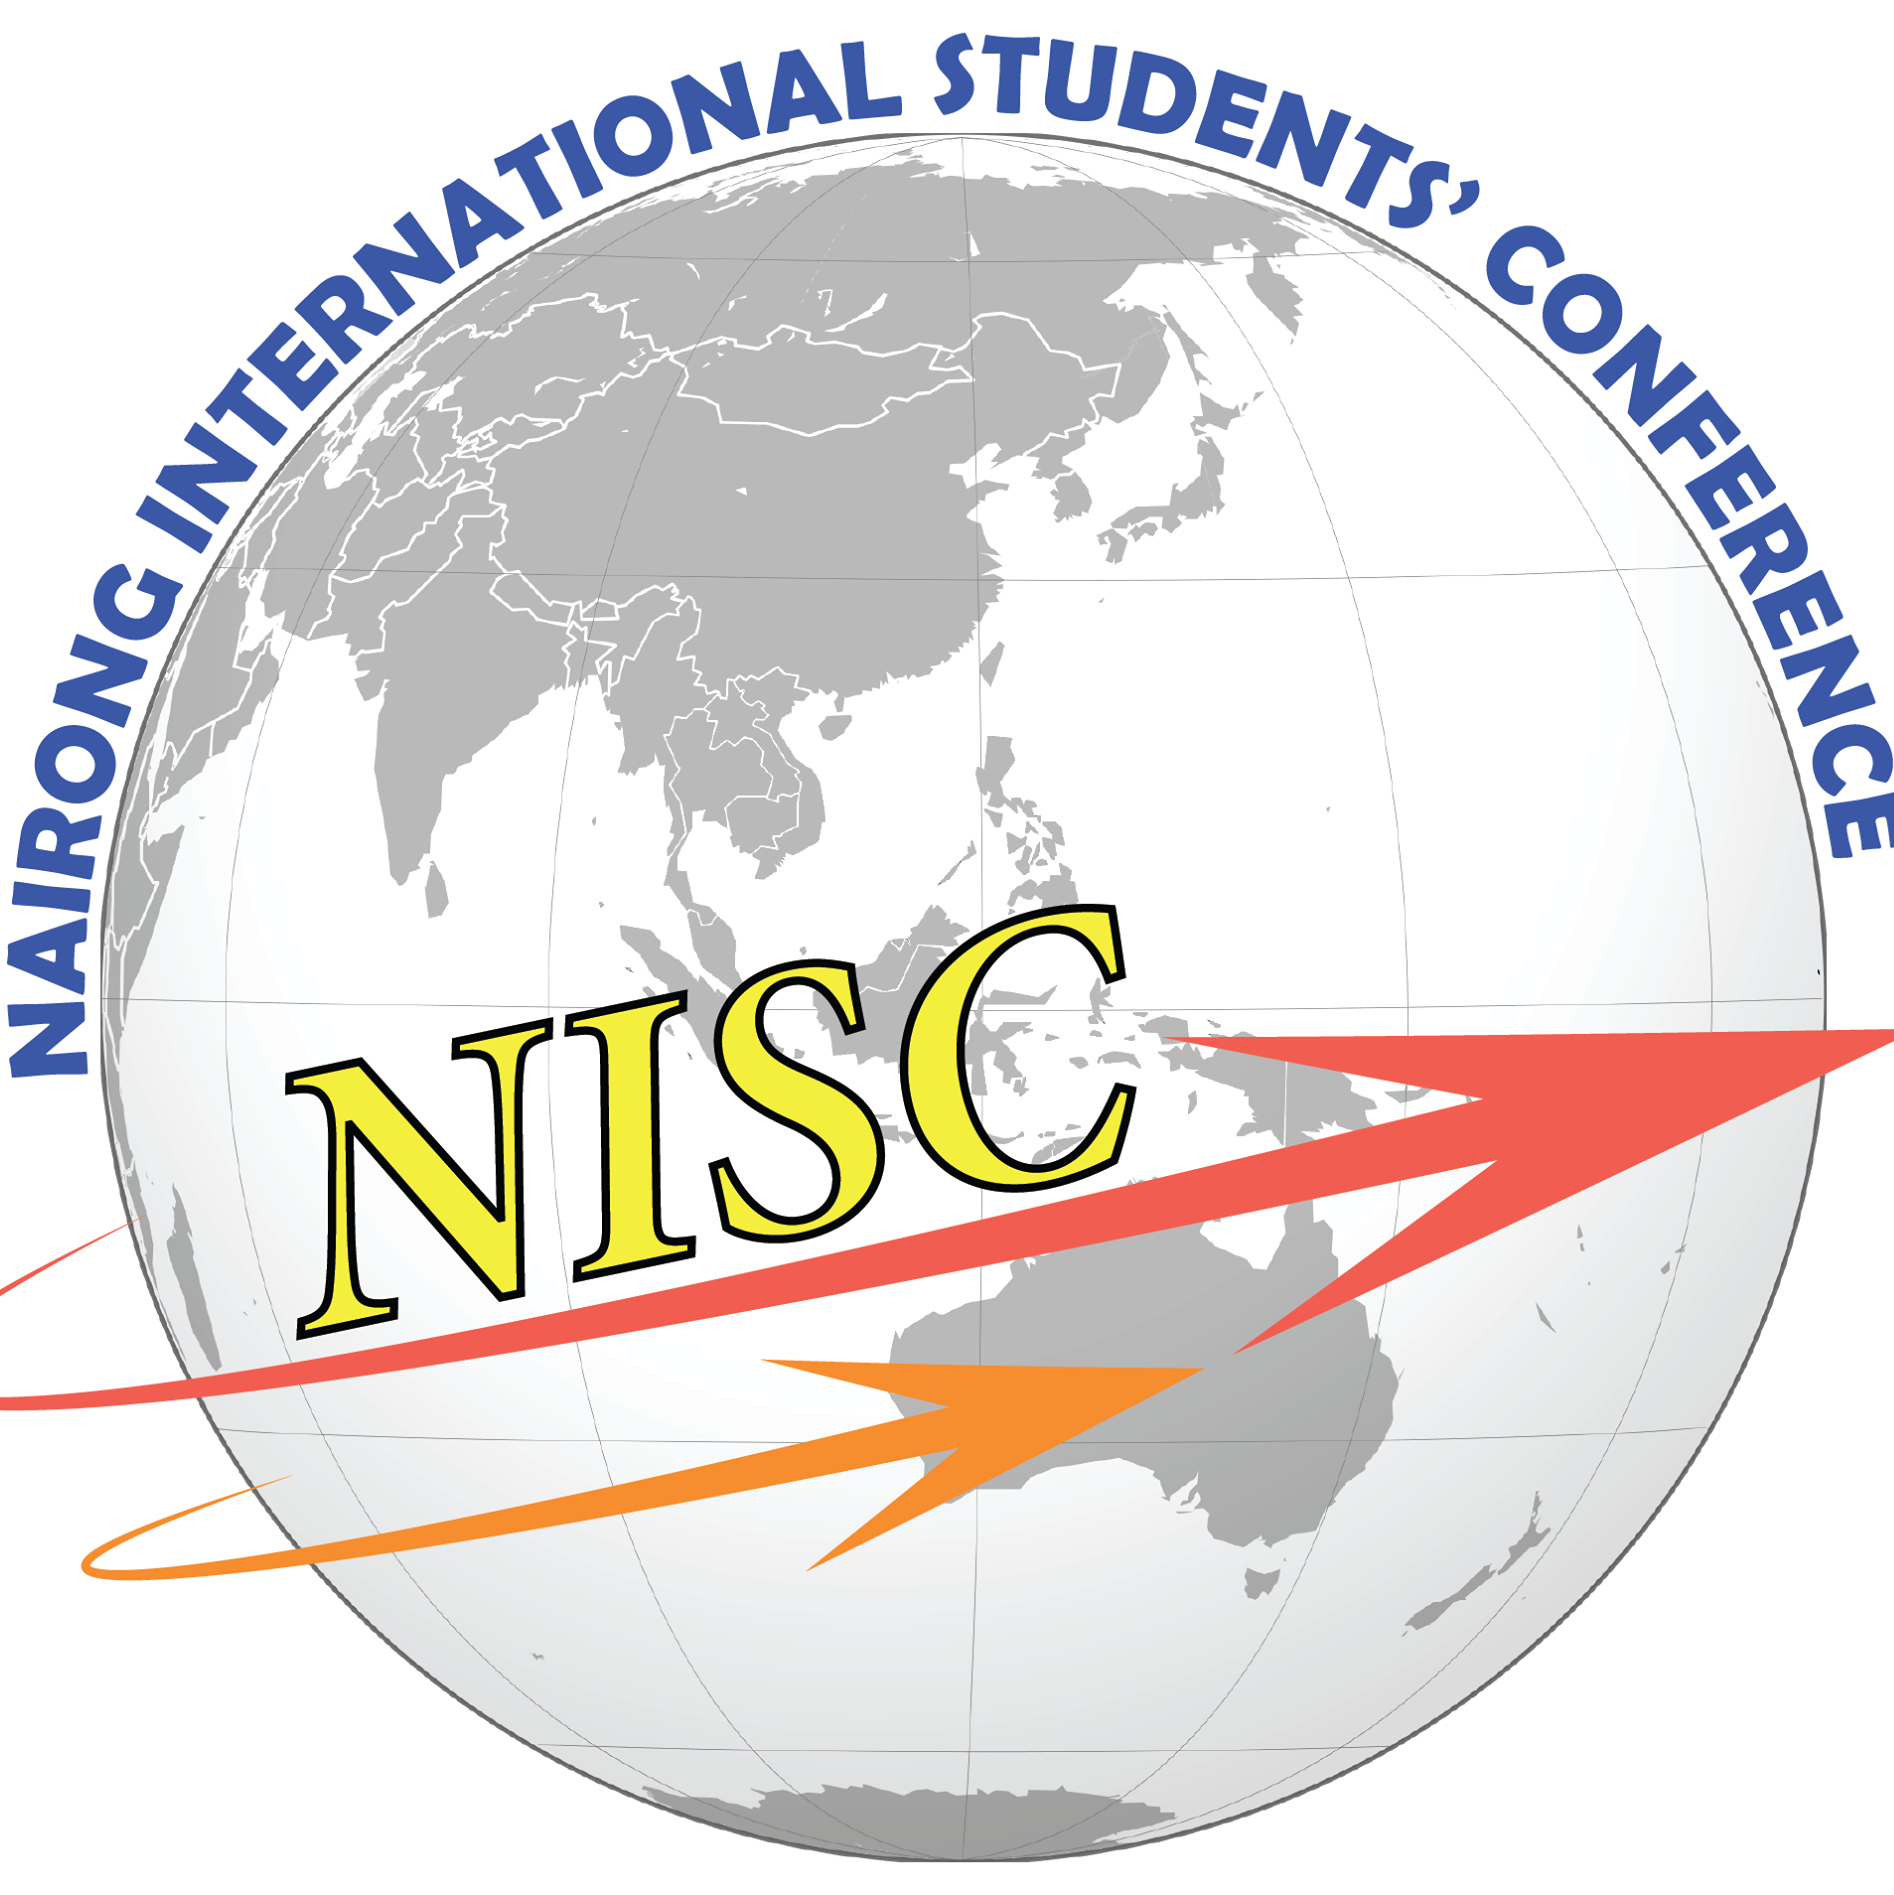 4th NAIRONG INTERNATIONAL STUDENT CONFERENCE 2018